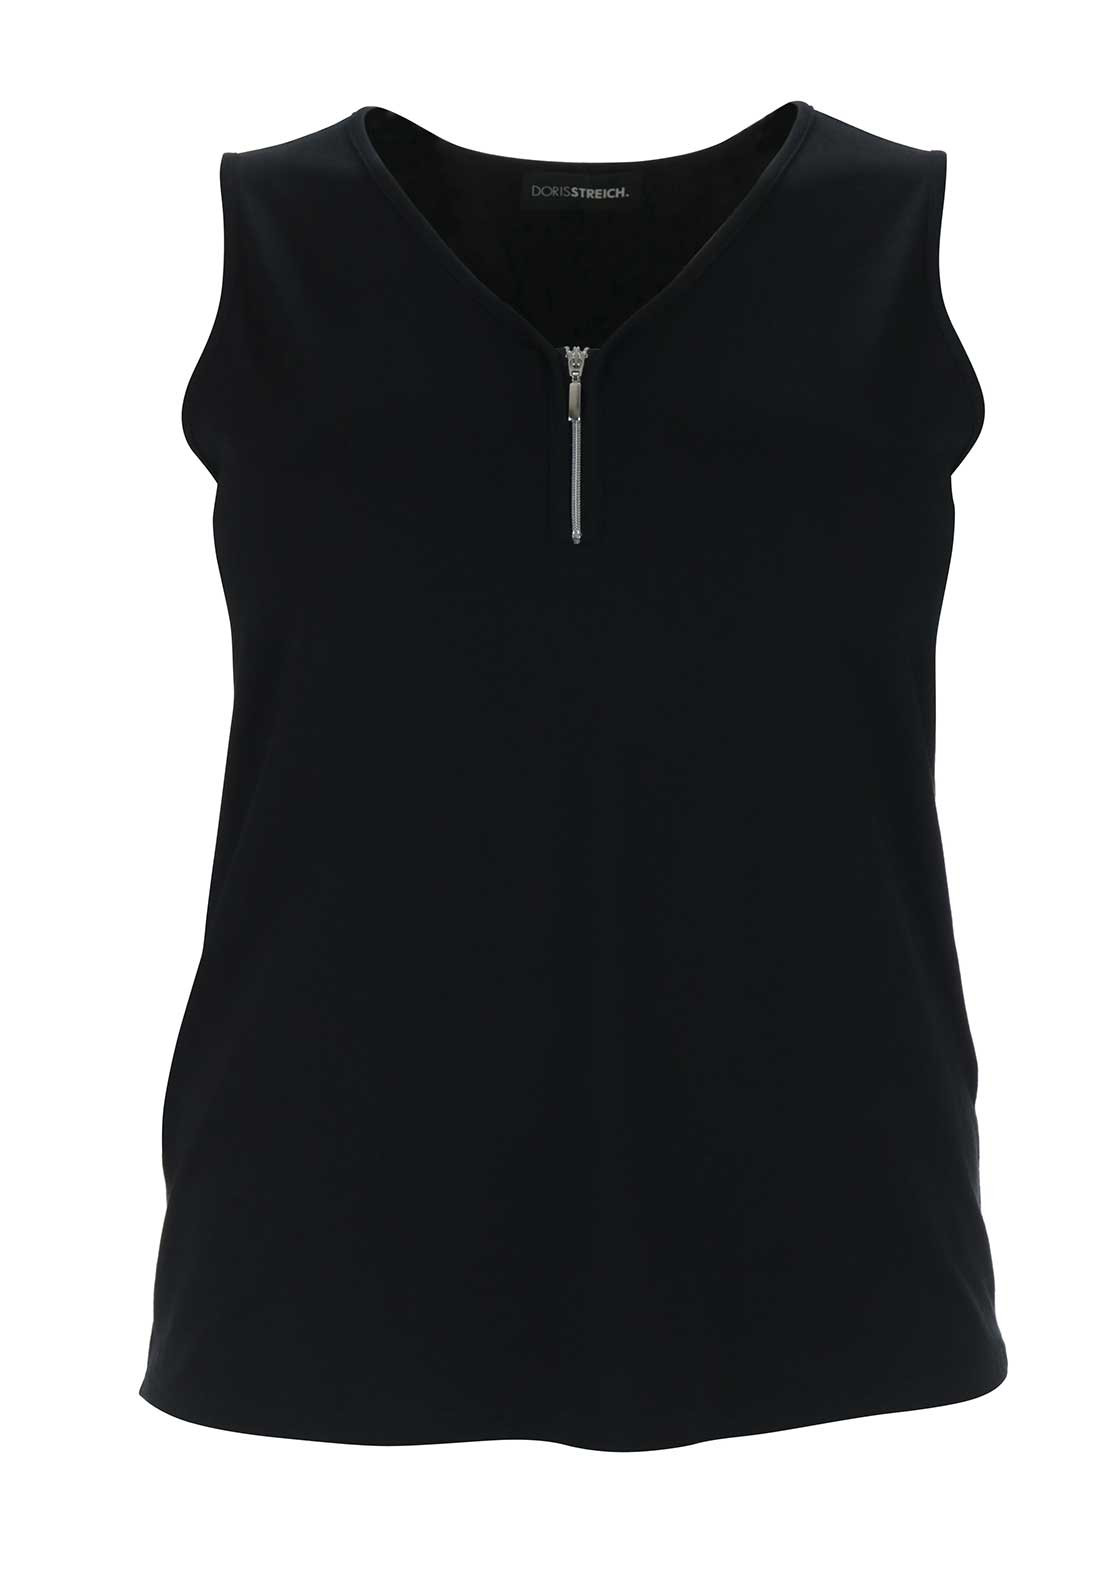 Doris Streich Sleeveless Jersey Top, Black